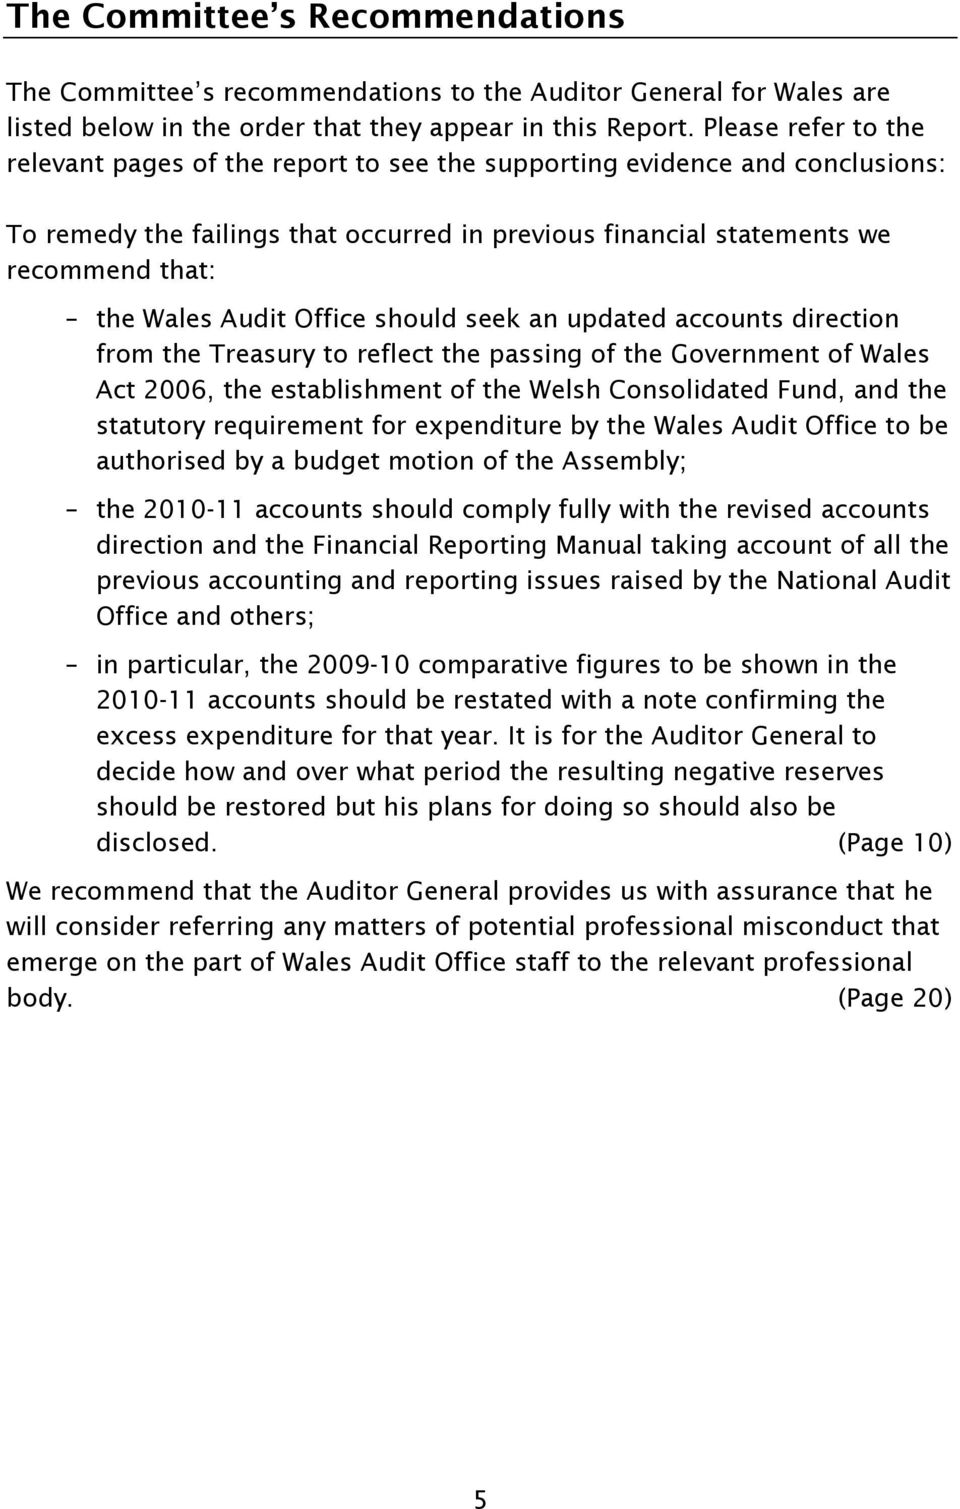 Audit Office should seek an updated accounts direction from the Treasury to reflect the passing of the Government of Wales Act 2006, the establishment of the Welsh Consolidated Fund, and the